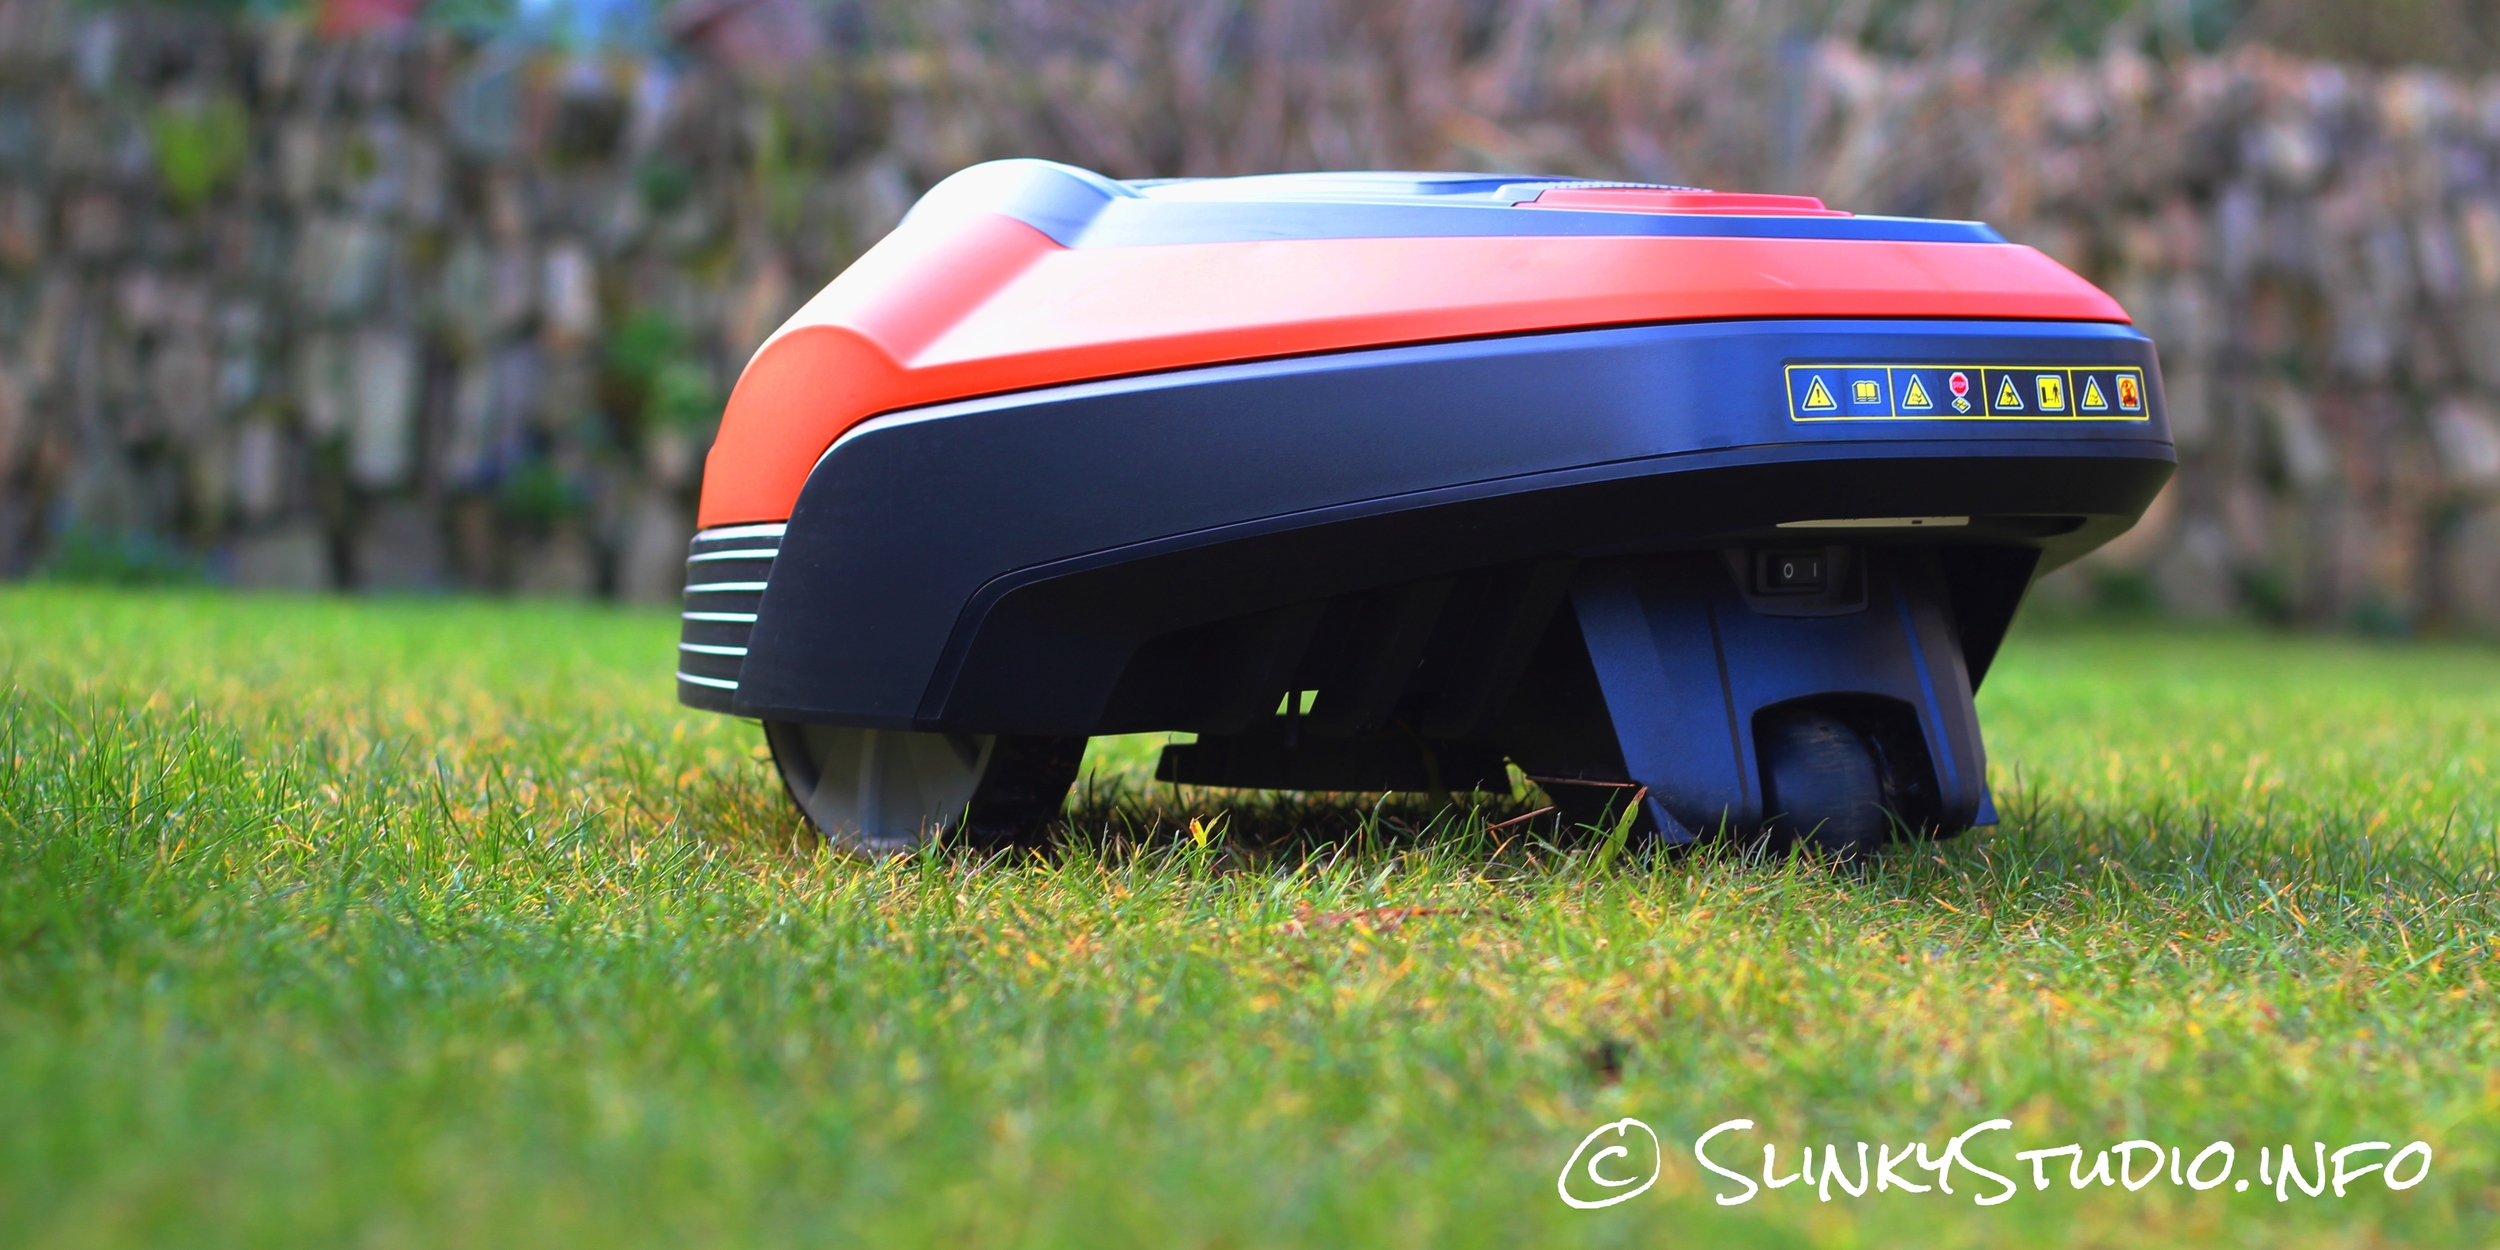 Flymo Robotic 1200R Lawnmower Low View.jpg